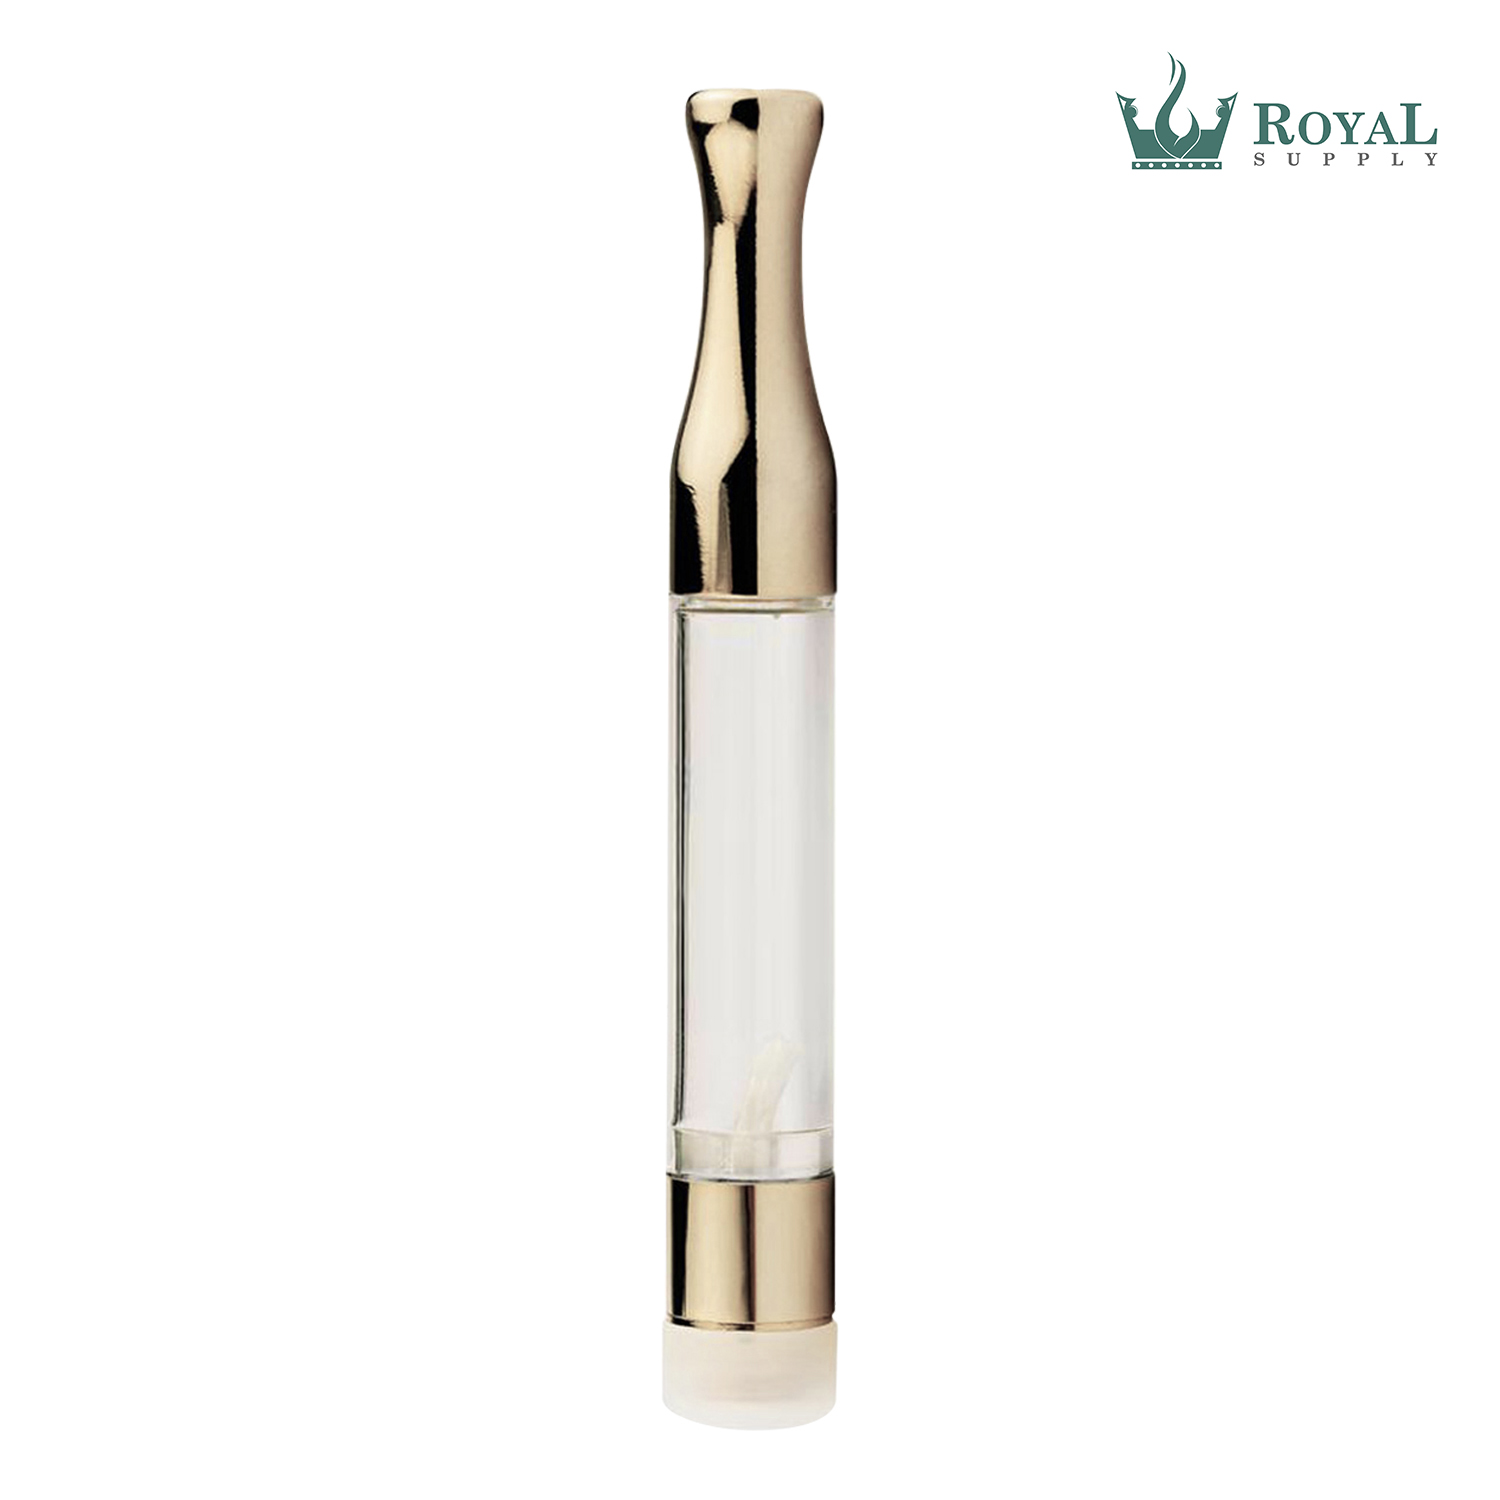 1 ML GOLD STAINLESS STEEL TIP RS2 CARTRIDGE